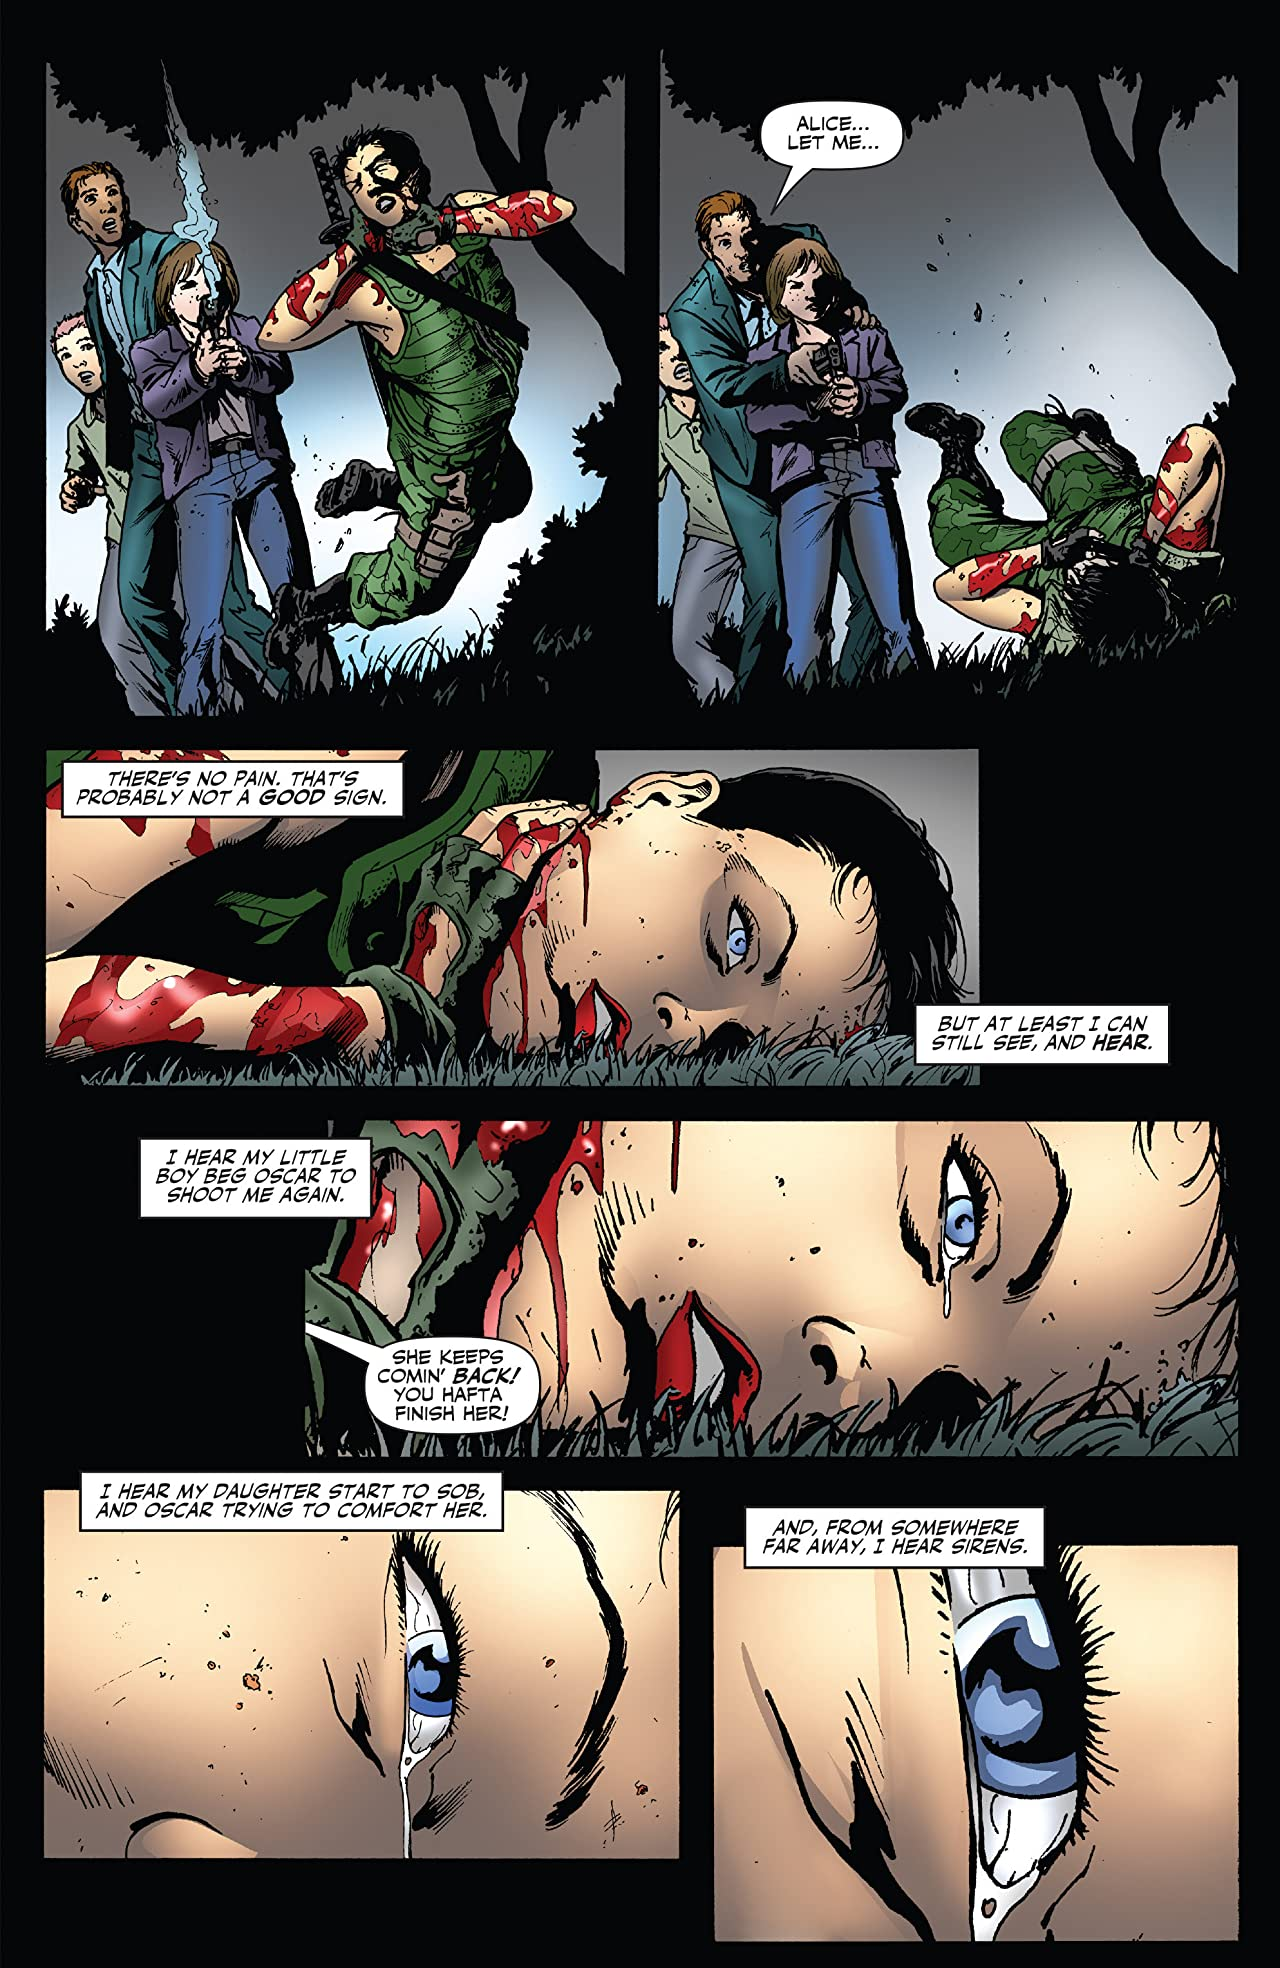 Garth Ennis' Jennifer Blood #36